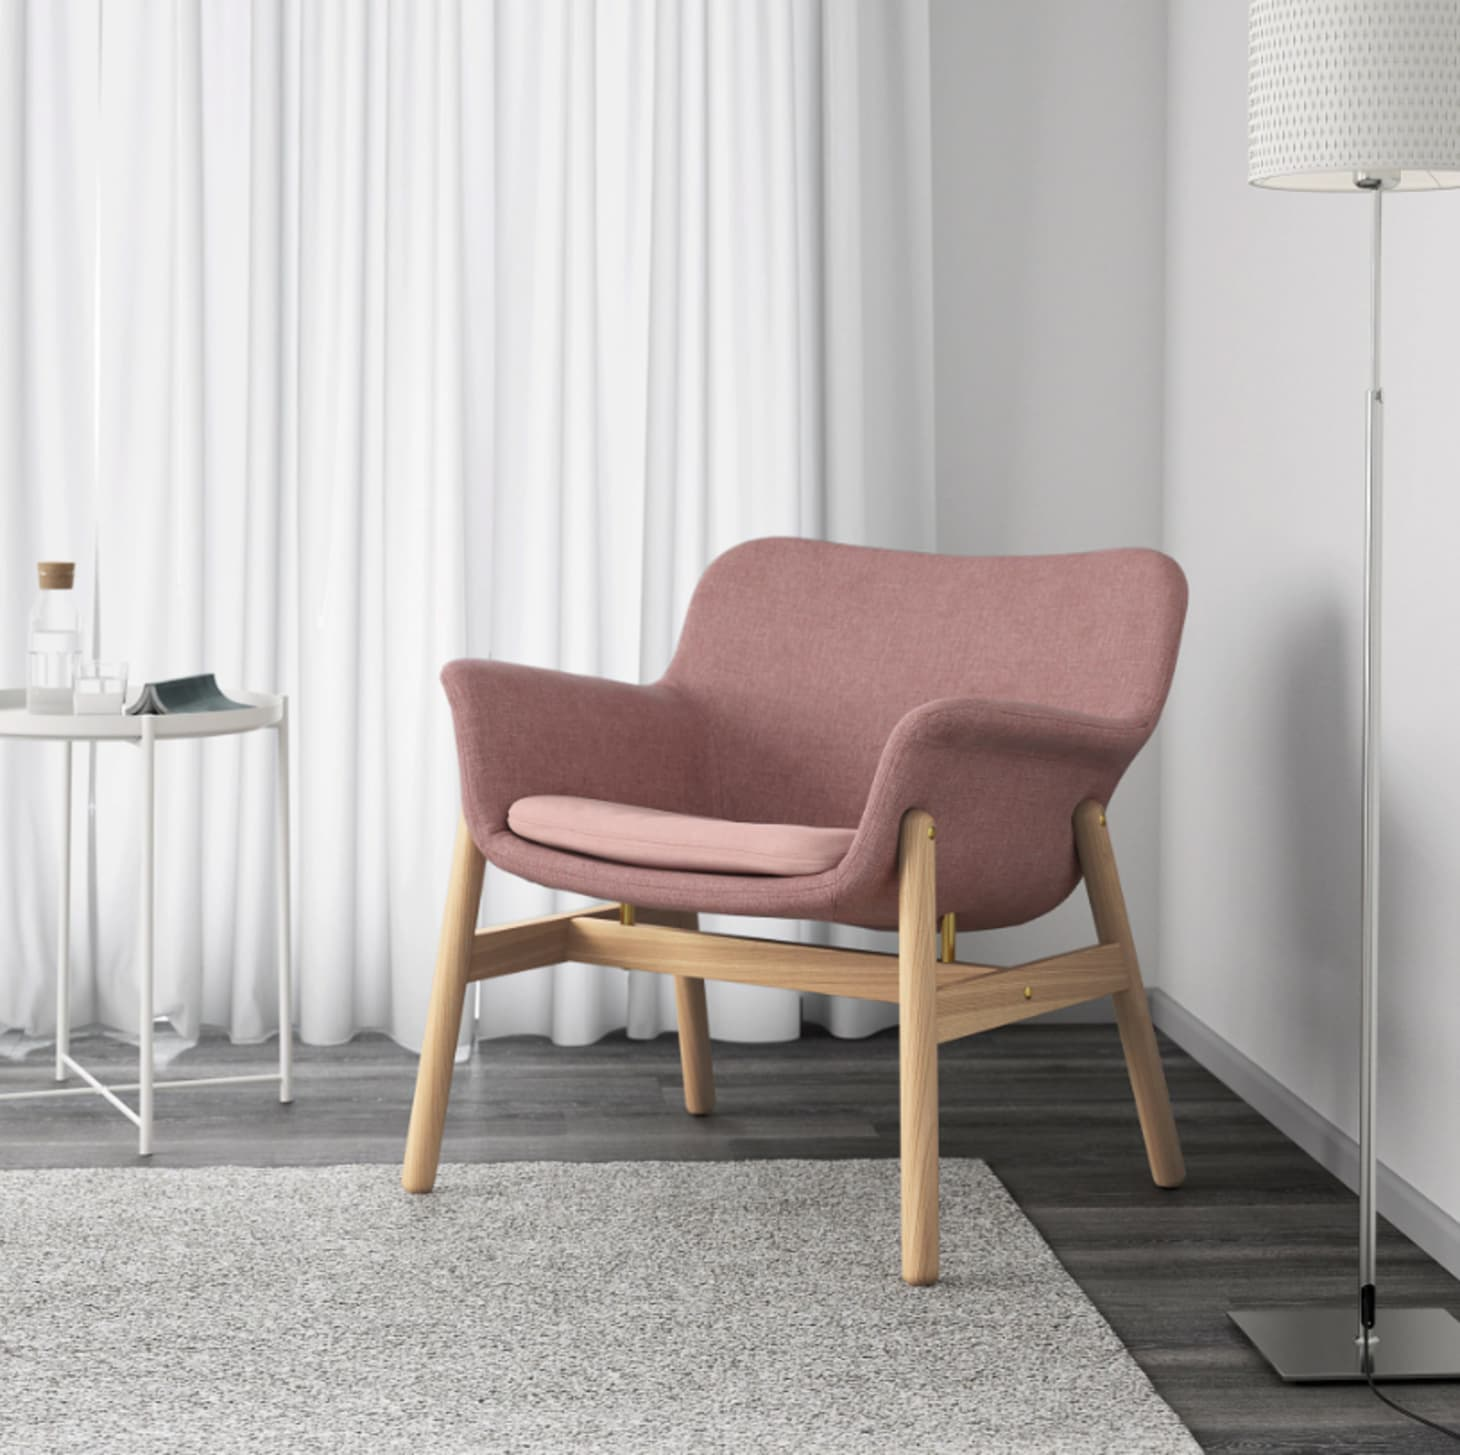 The Best Minimalist Furniture at IKEA | Apartment Therapy